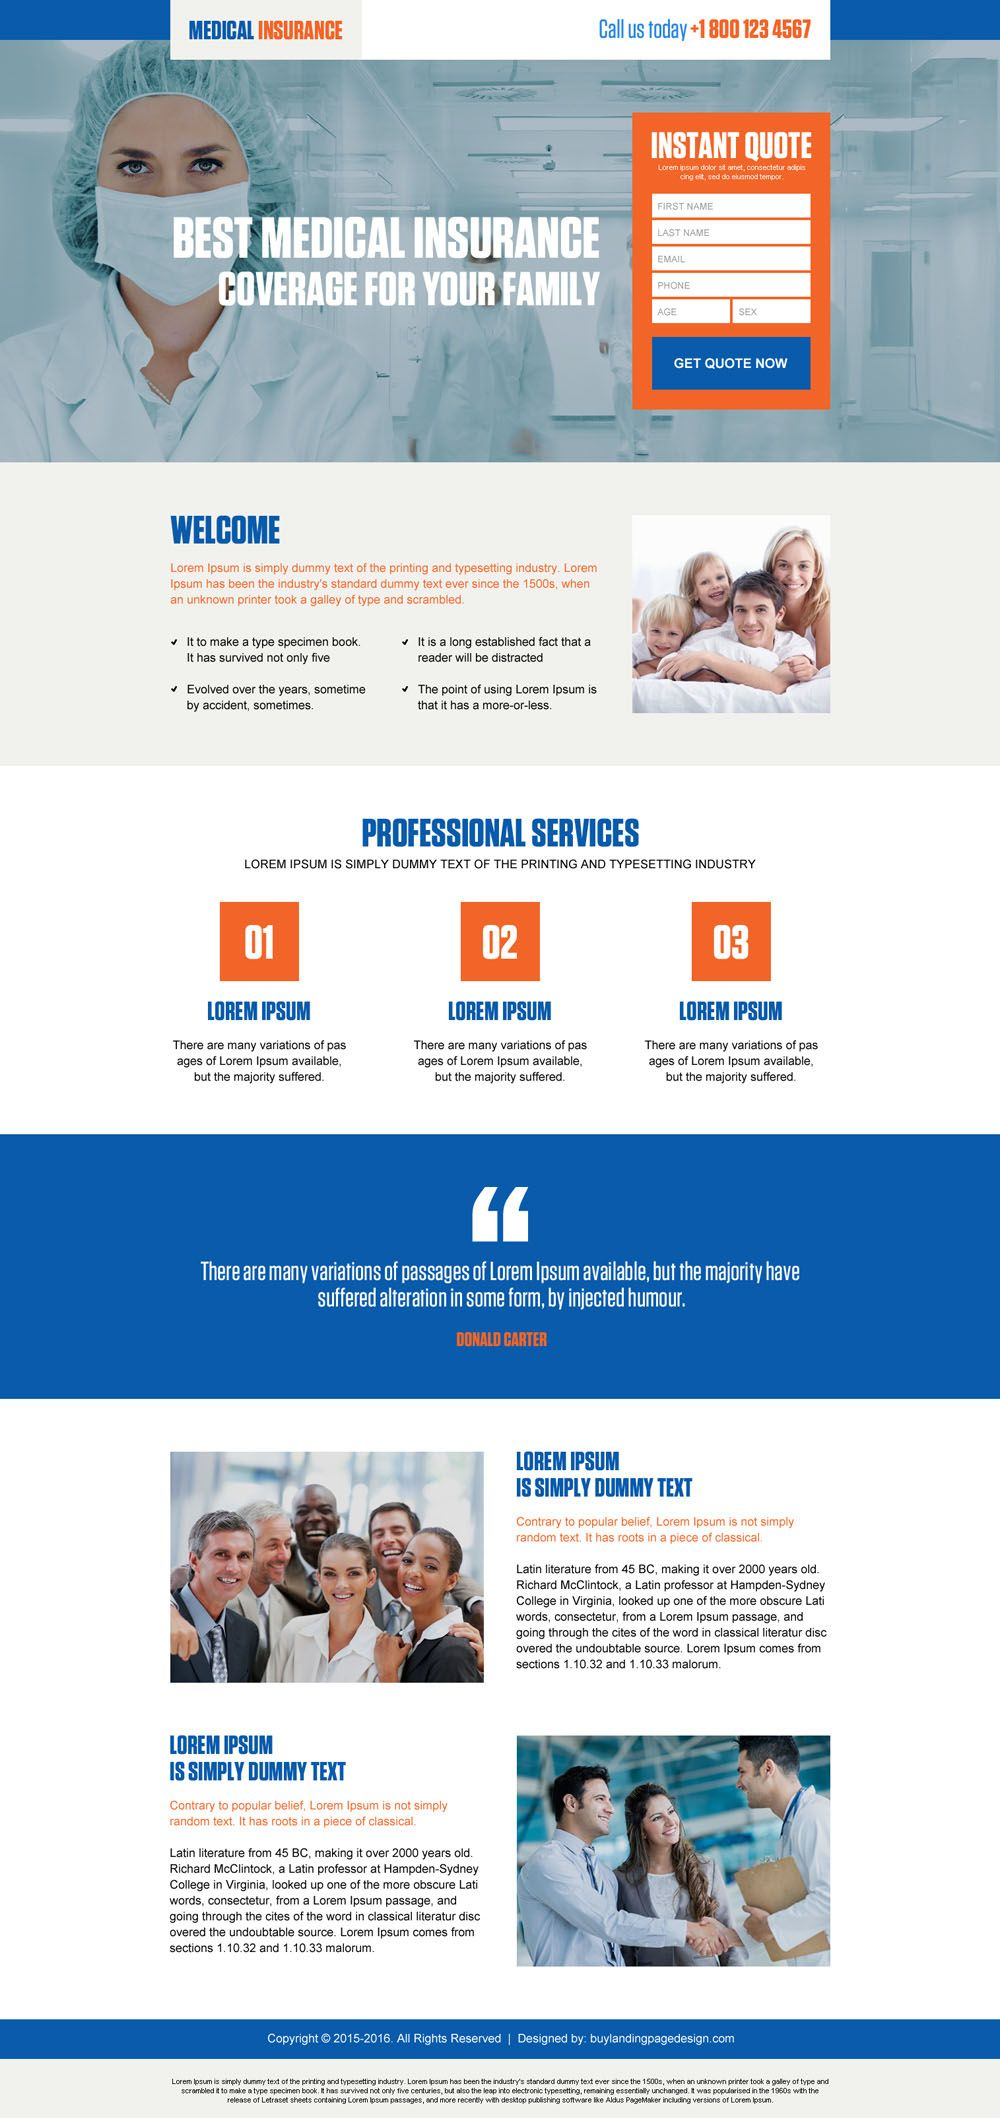 best medical insurance coverage for family lead